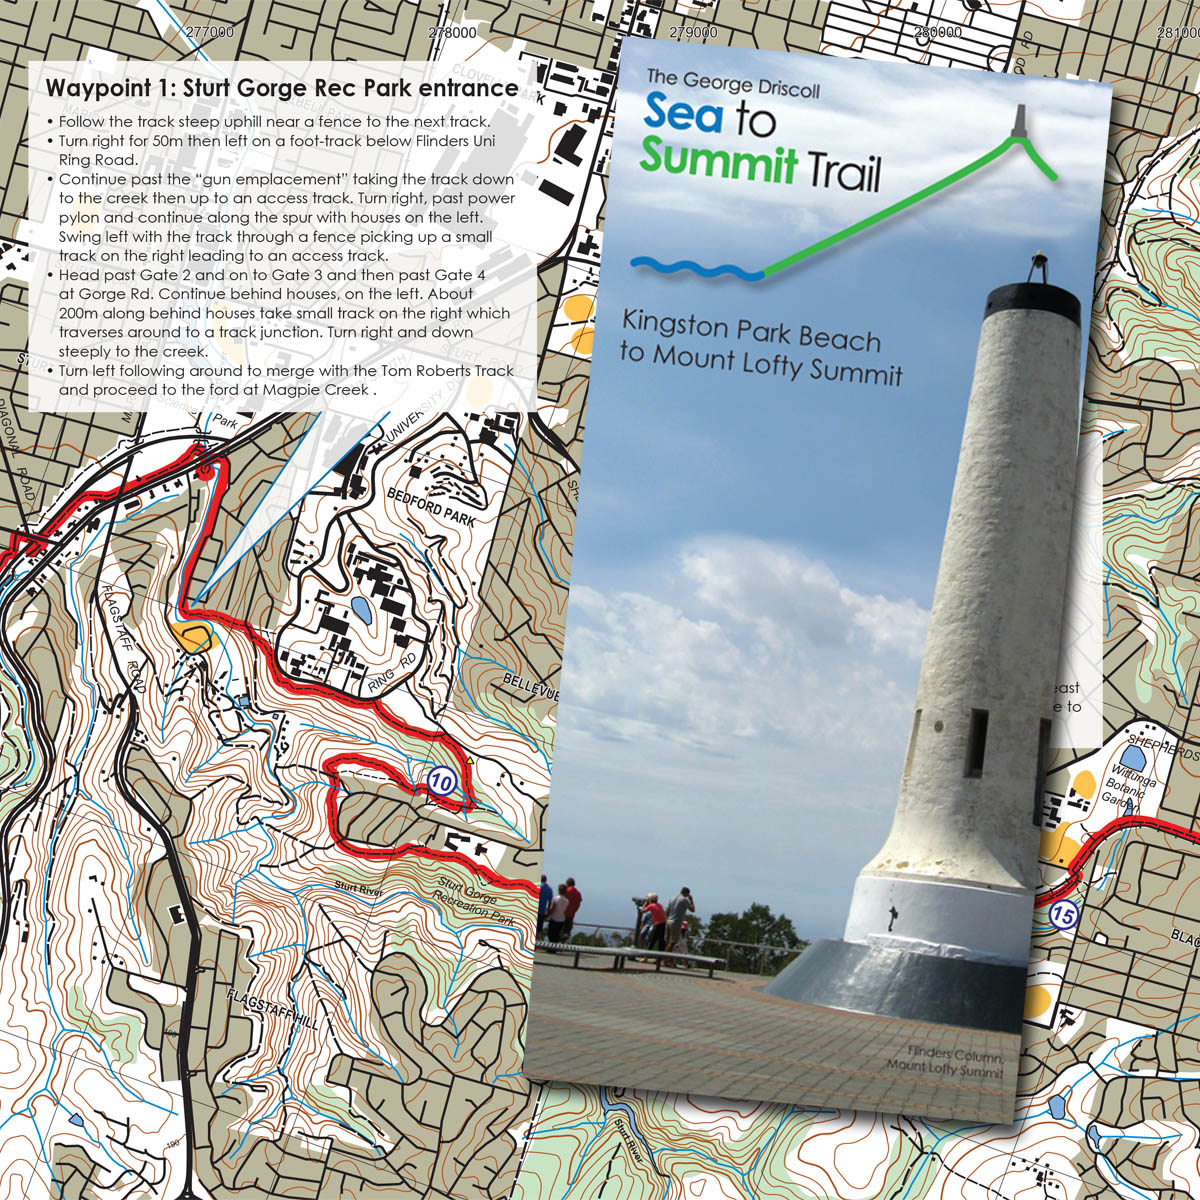 Sea to Summit Trail map | The Friends of the Heysen Trail Summit Map on